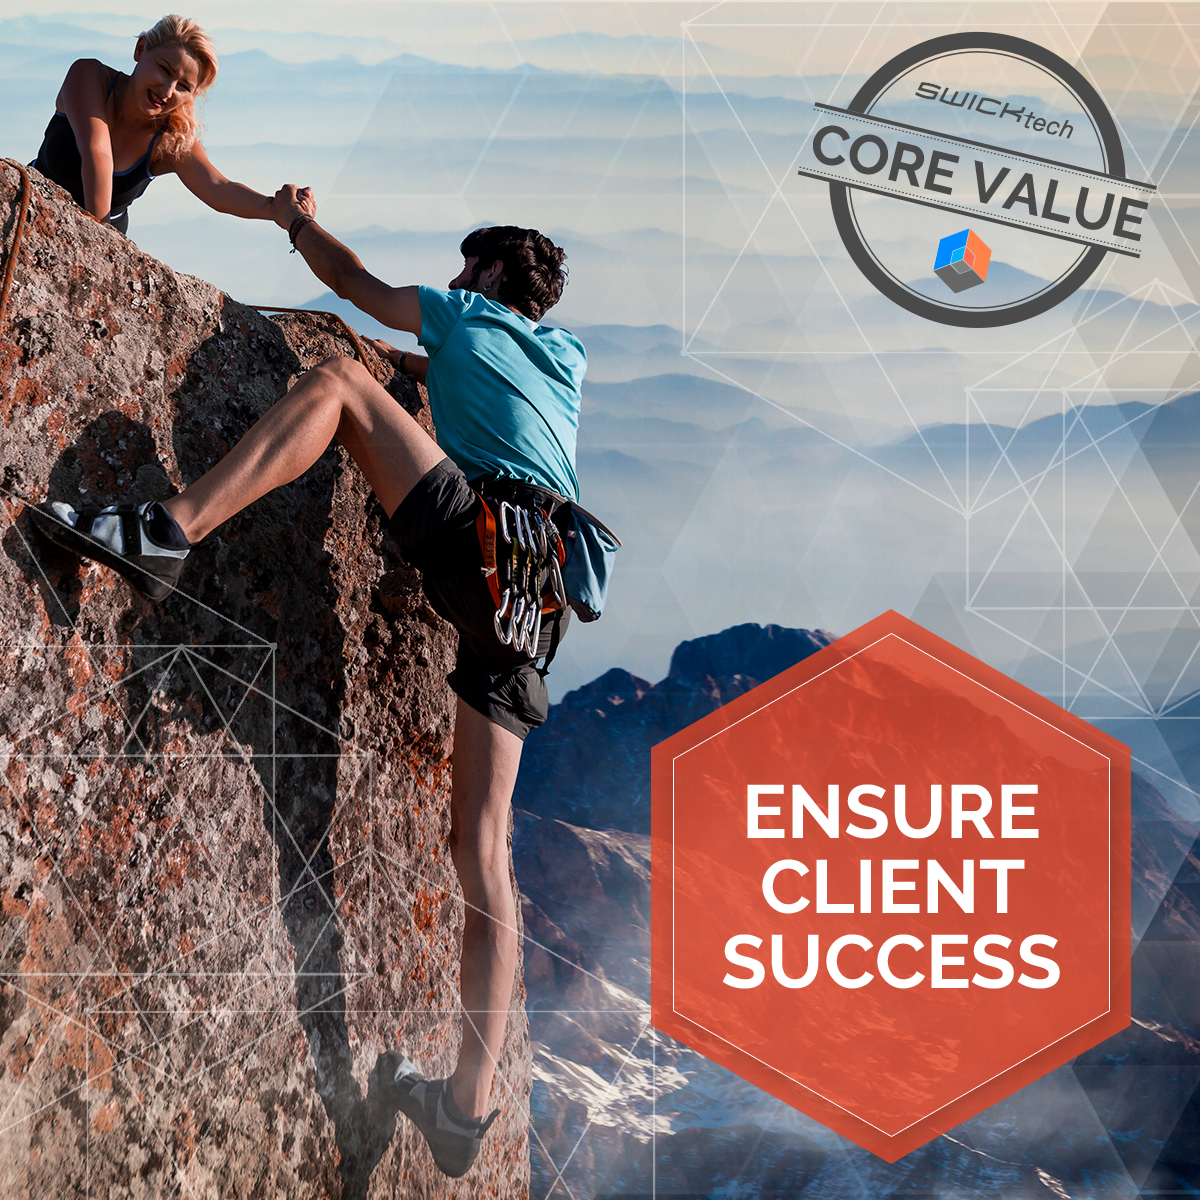 "a man is rock climbing on the side of the mountain. he is reaching up as a woman at the top of the mountain pulls him up. mountains are in the background. an orange hexagon has the copy, ""ensure client success"" in it and geometric shapes cover the graphic. in the top corner is the swicktech core value stamp along with their logo"